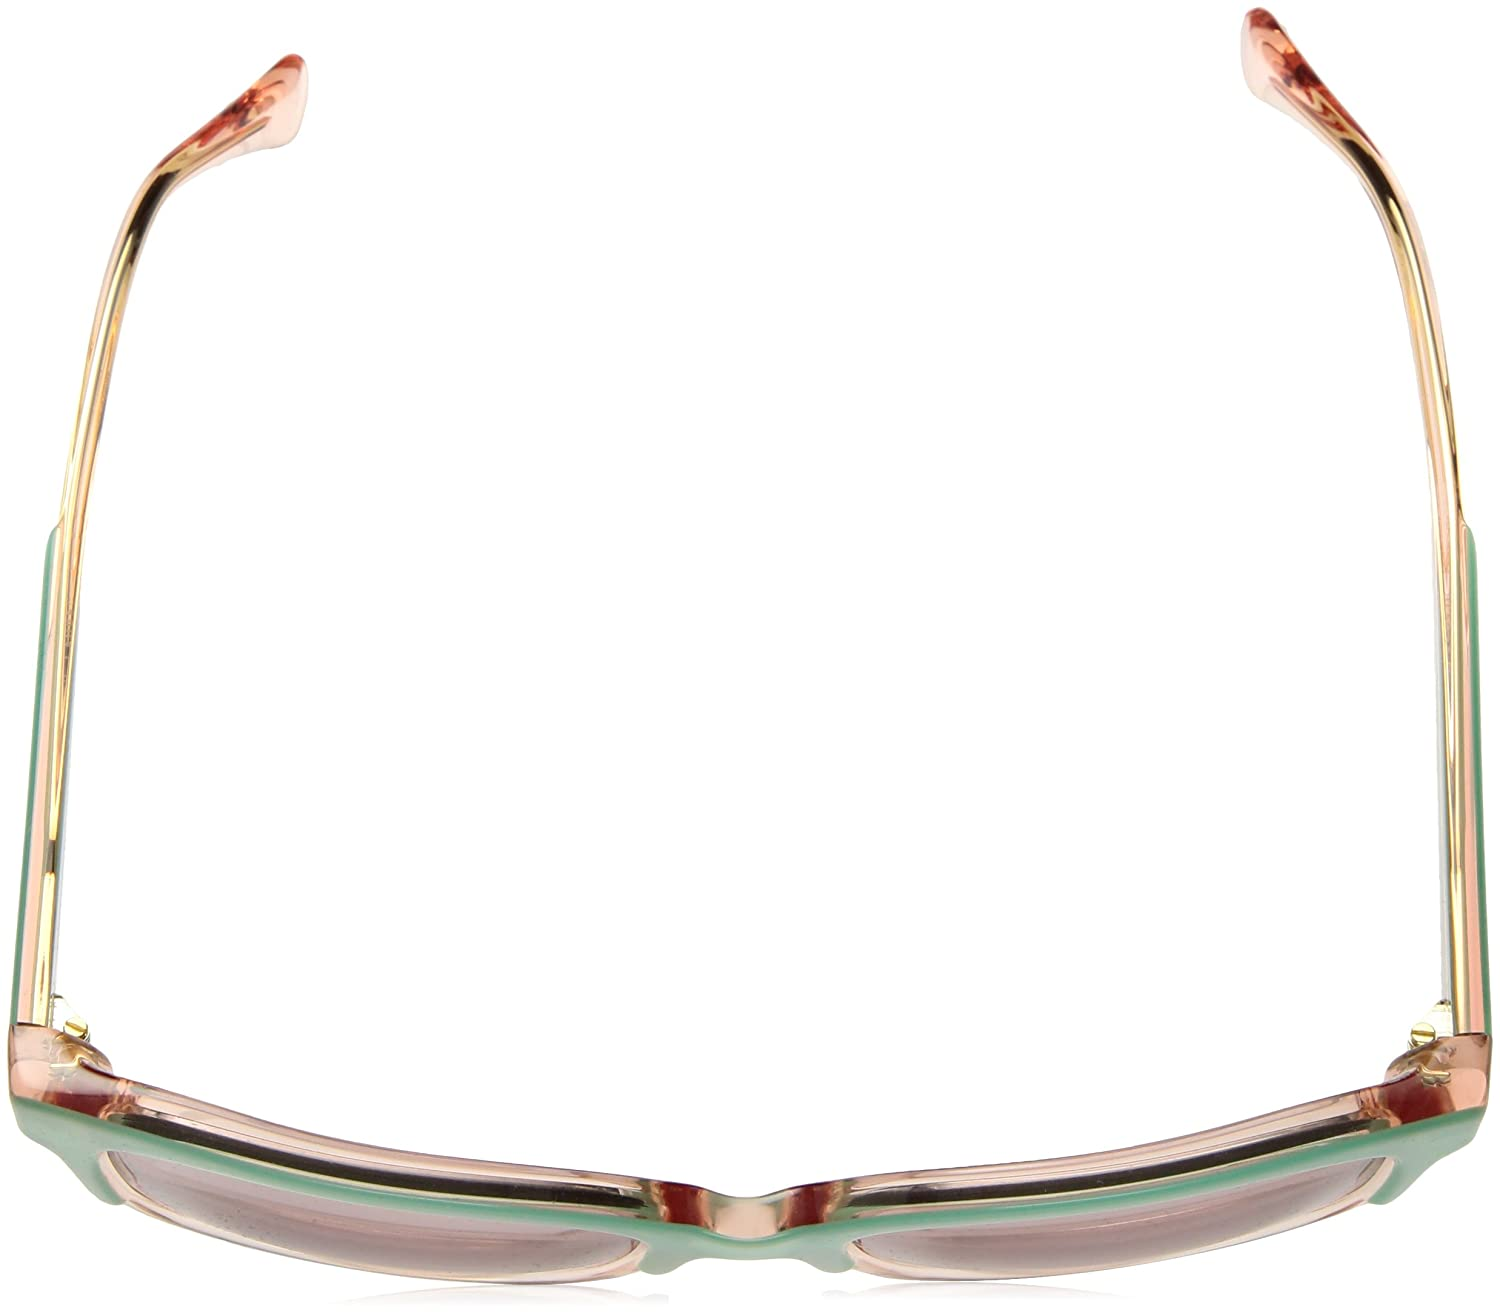 Ralph 0RA5247, Gafas de Sol para Mujer, Top Green/Light Rose, 55: Amazon.es: Ropa y accesorios